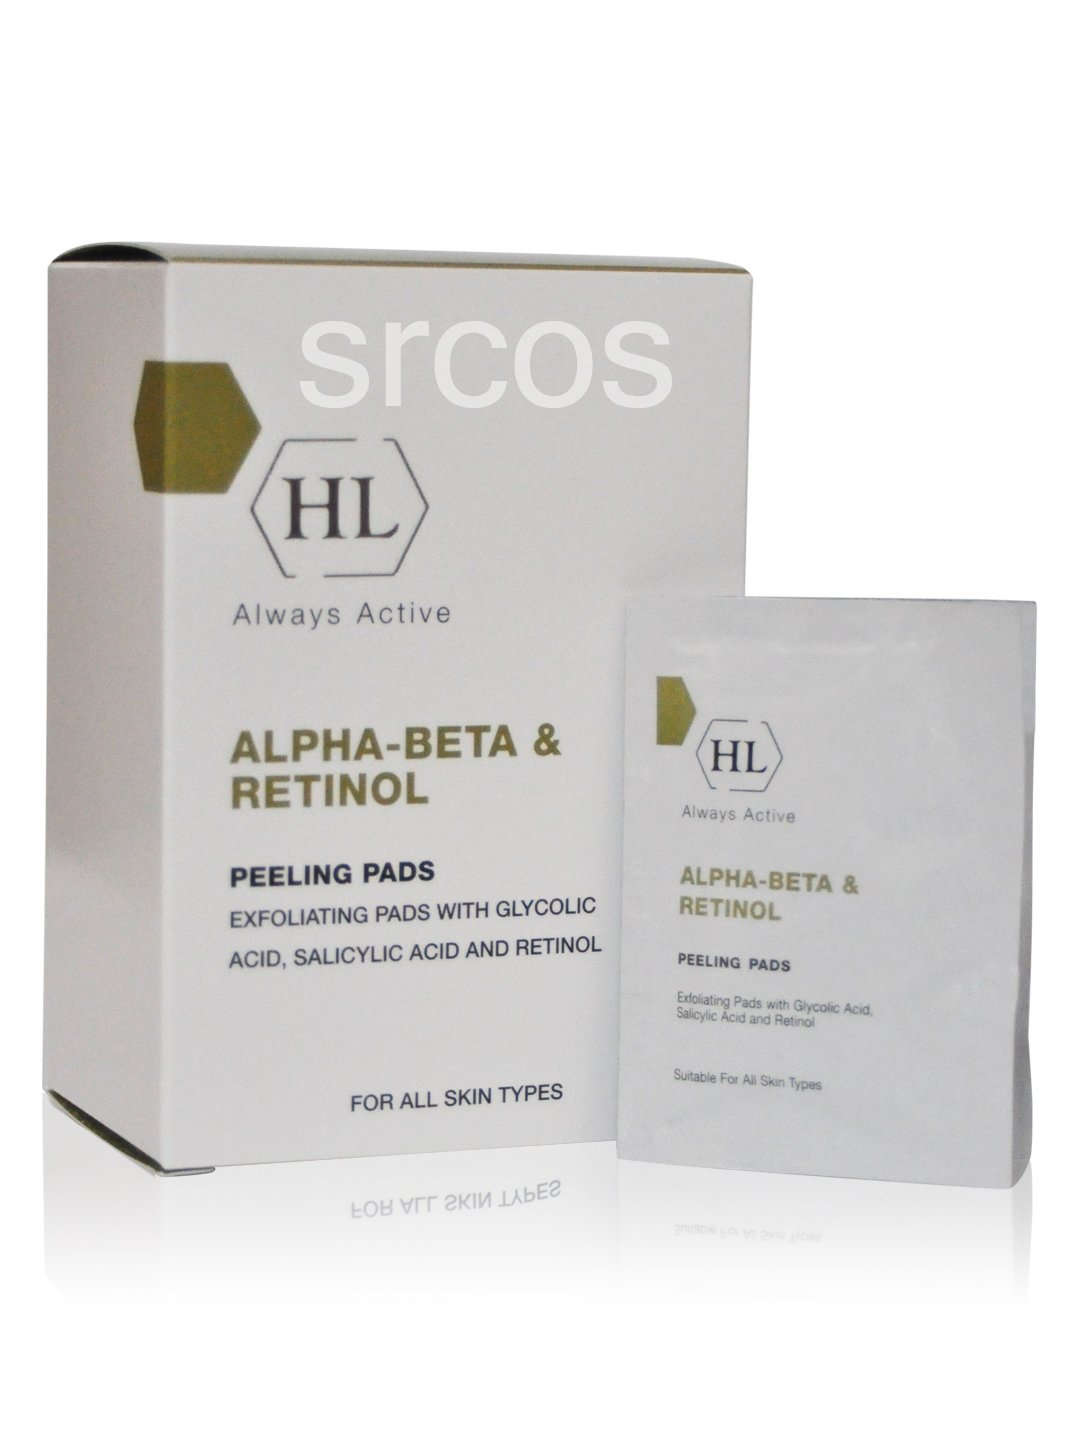 Holy Land Cosmetics Alpha-beta & Retinol Peeling Pads (24pcs)